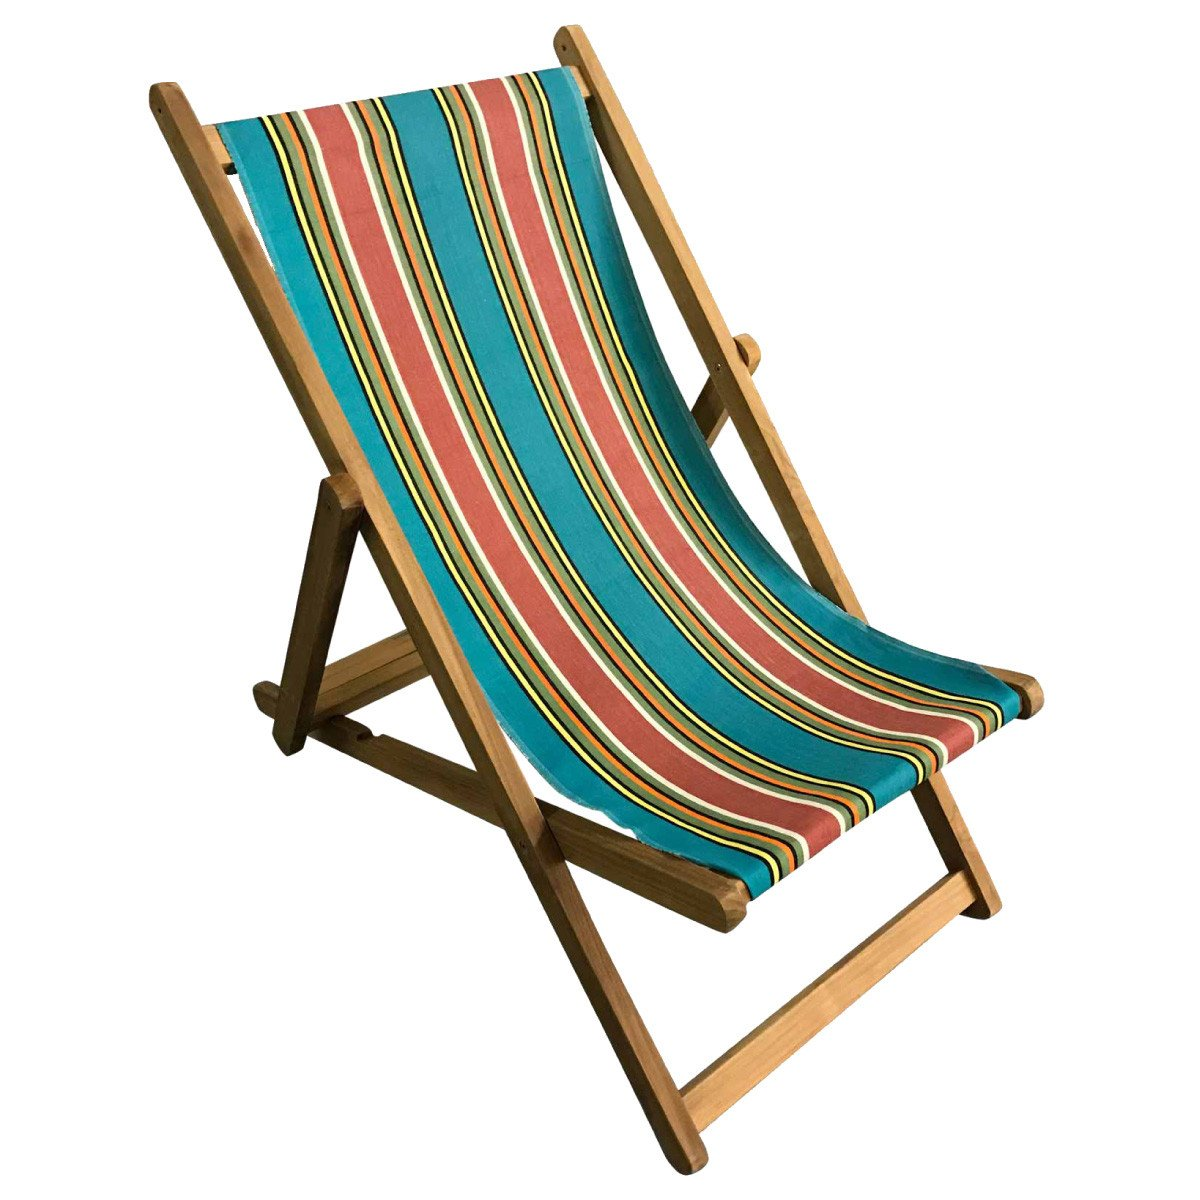 Bagatelle Premium Teak Hardwood Striped Deckchair - Deckchair Stripes